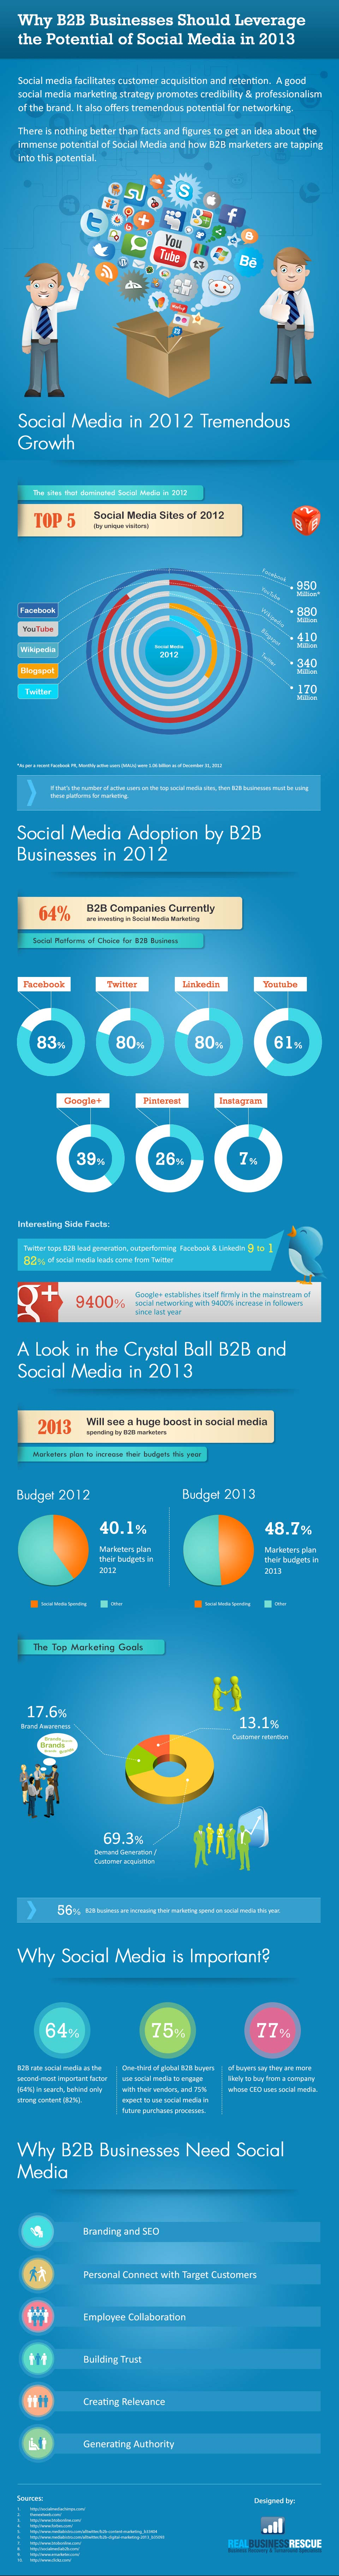 B2B Social Media Opportunities 2013-Infographic